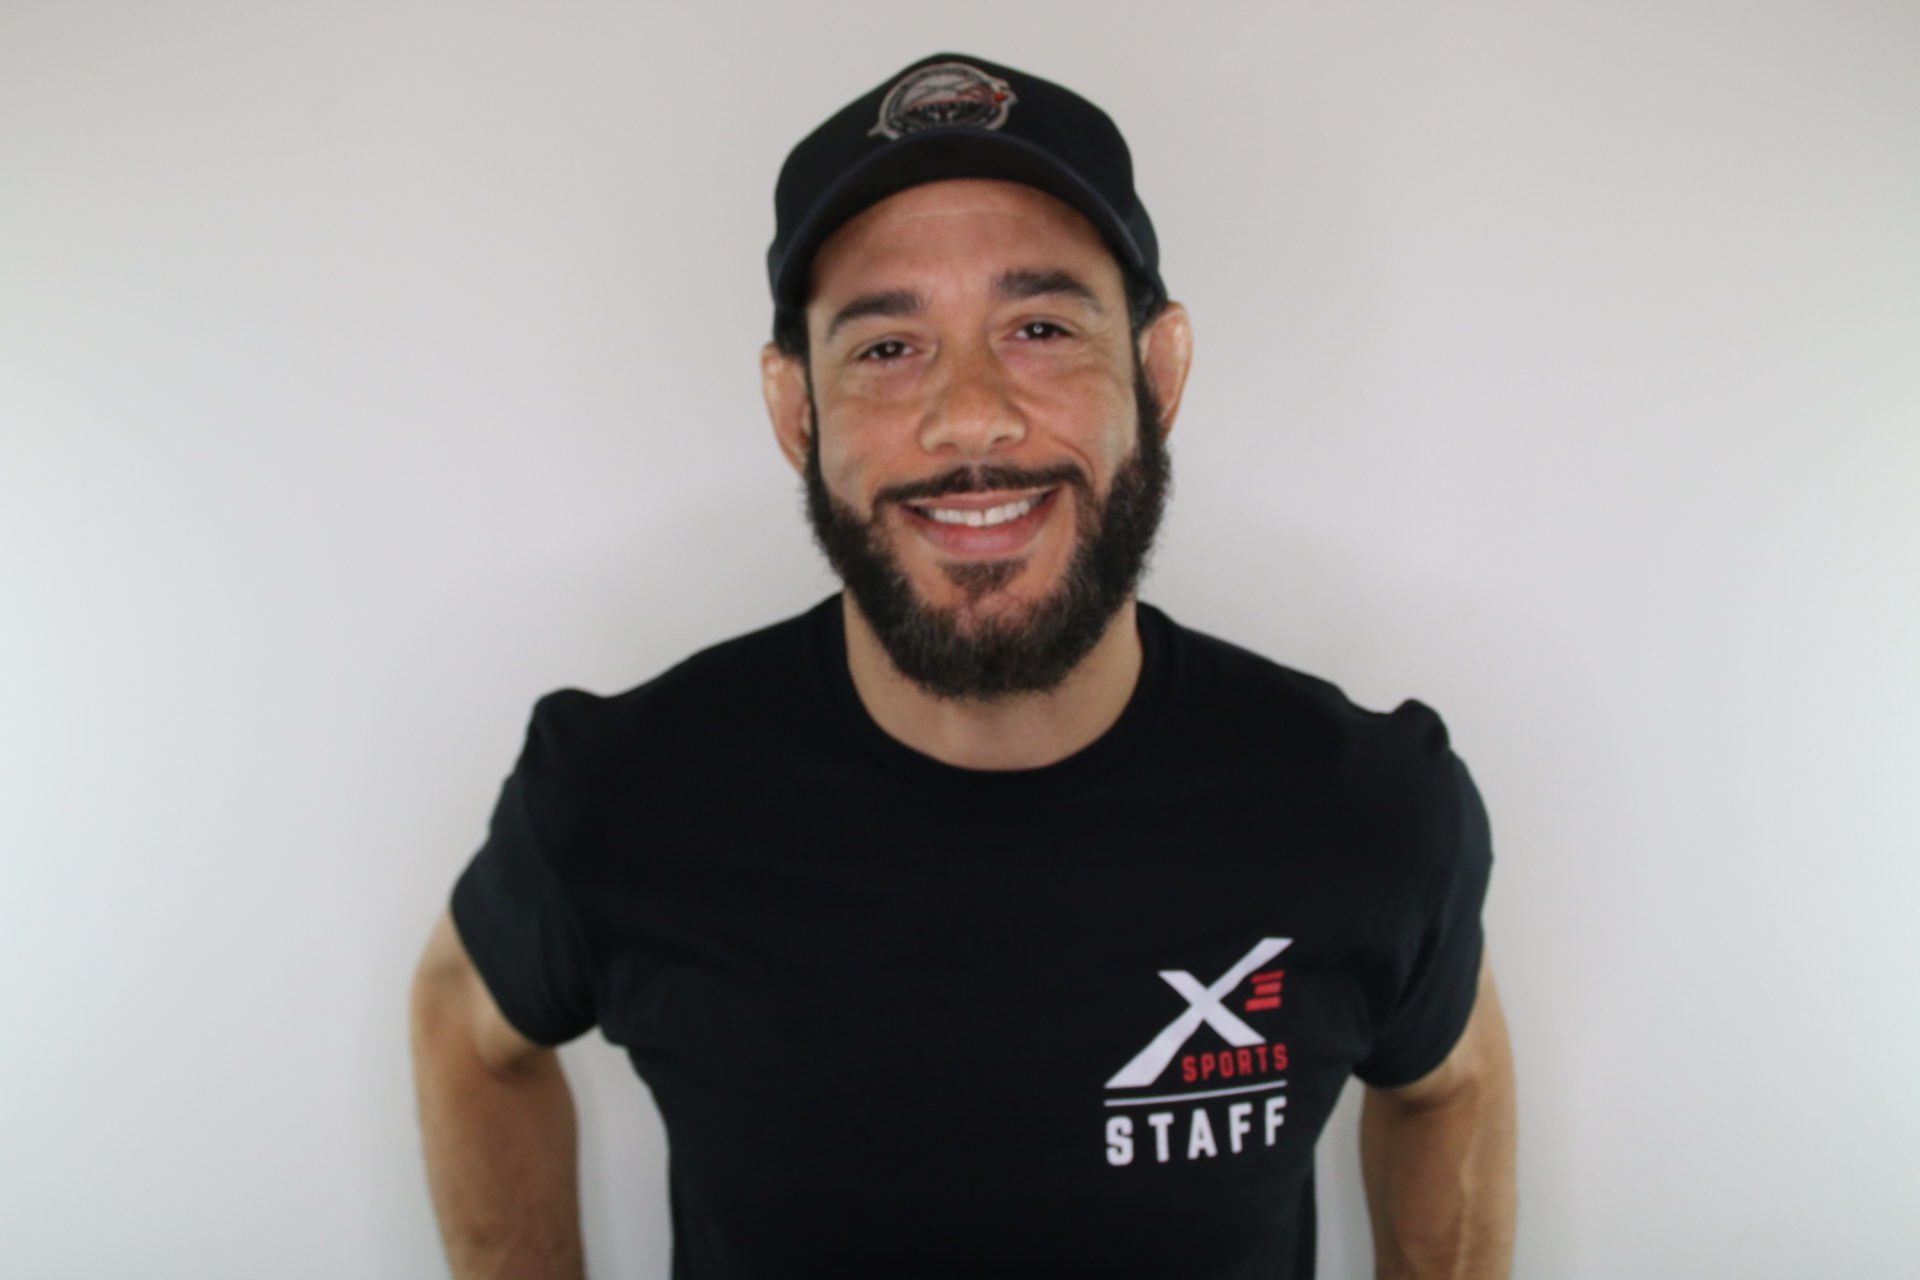 Tony Tucci | X3 Sports Employee | X3 Sports